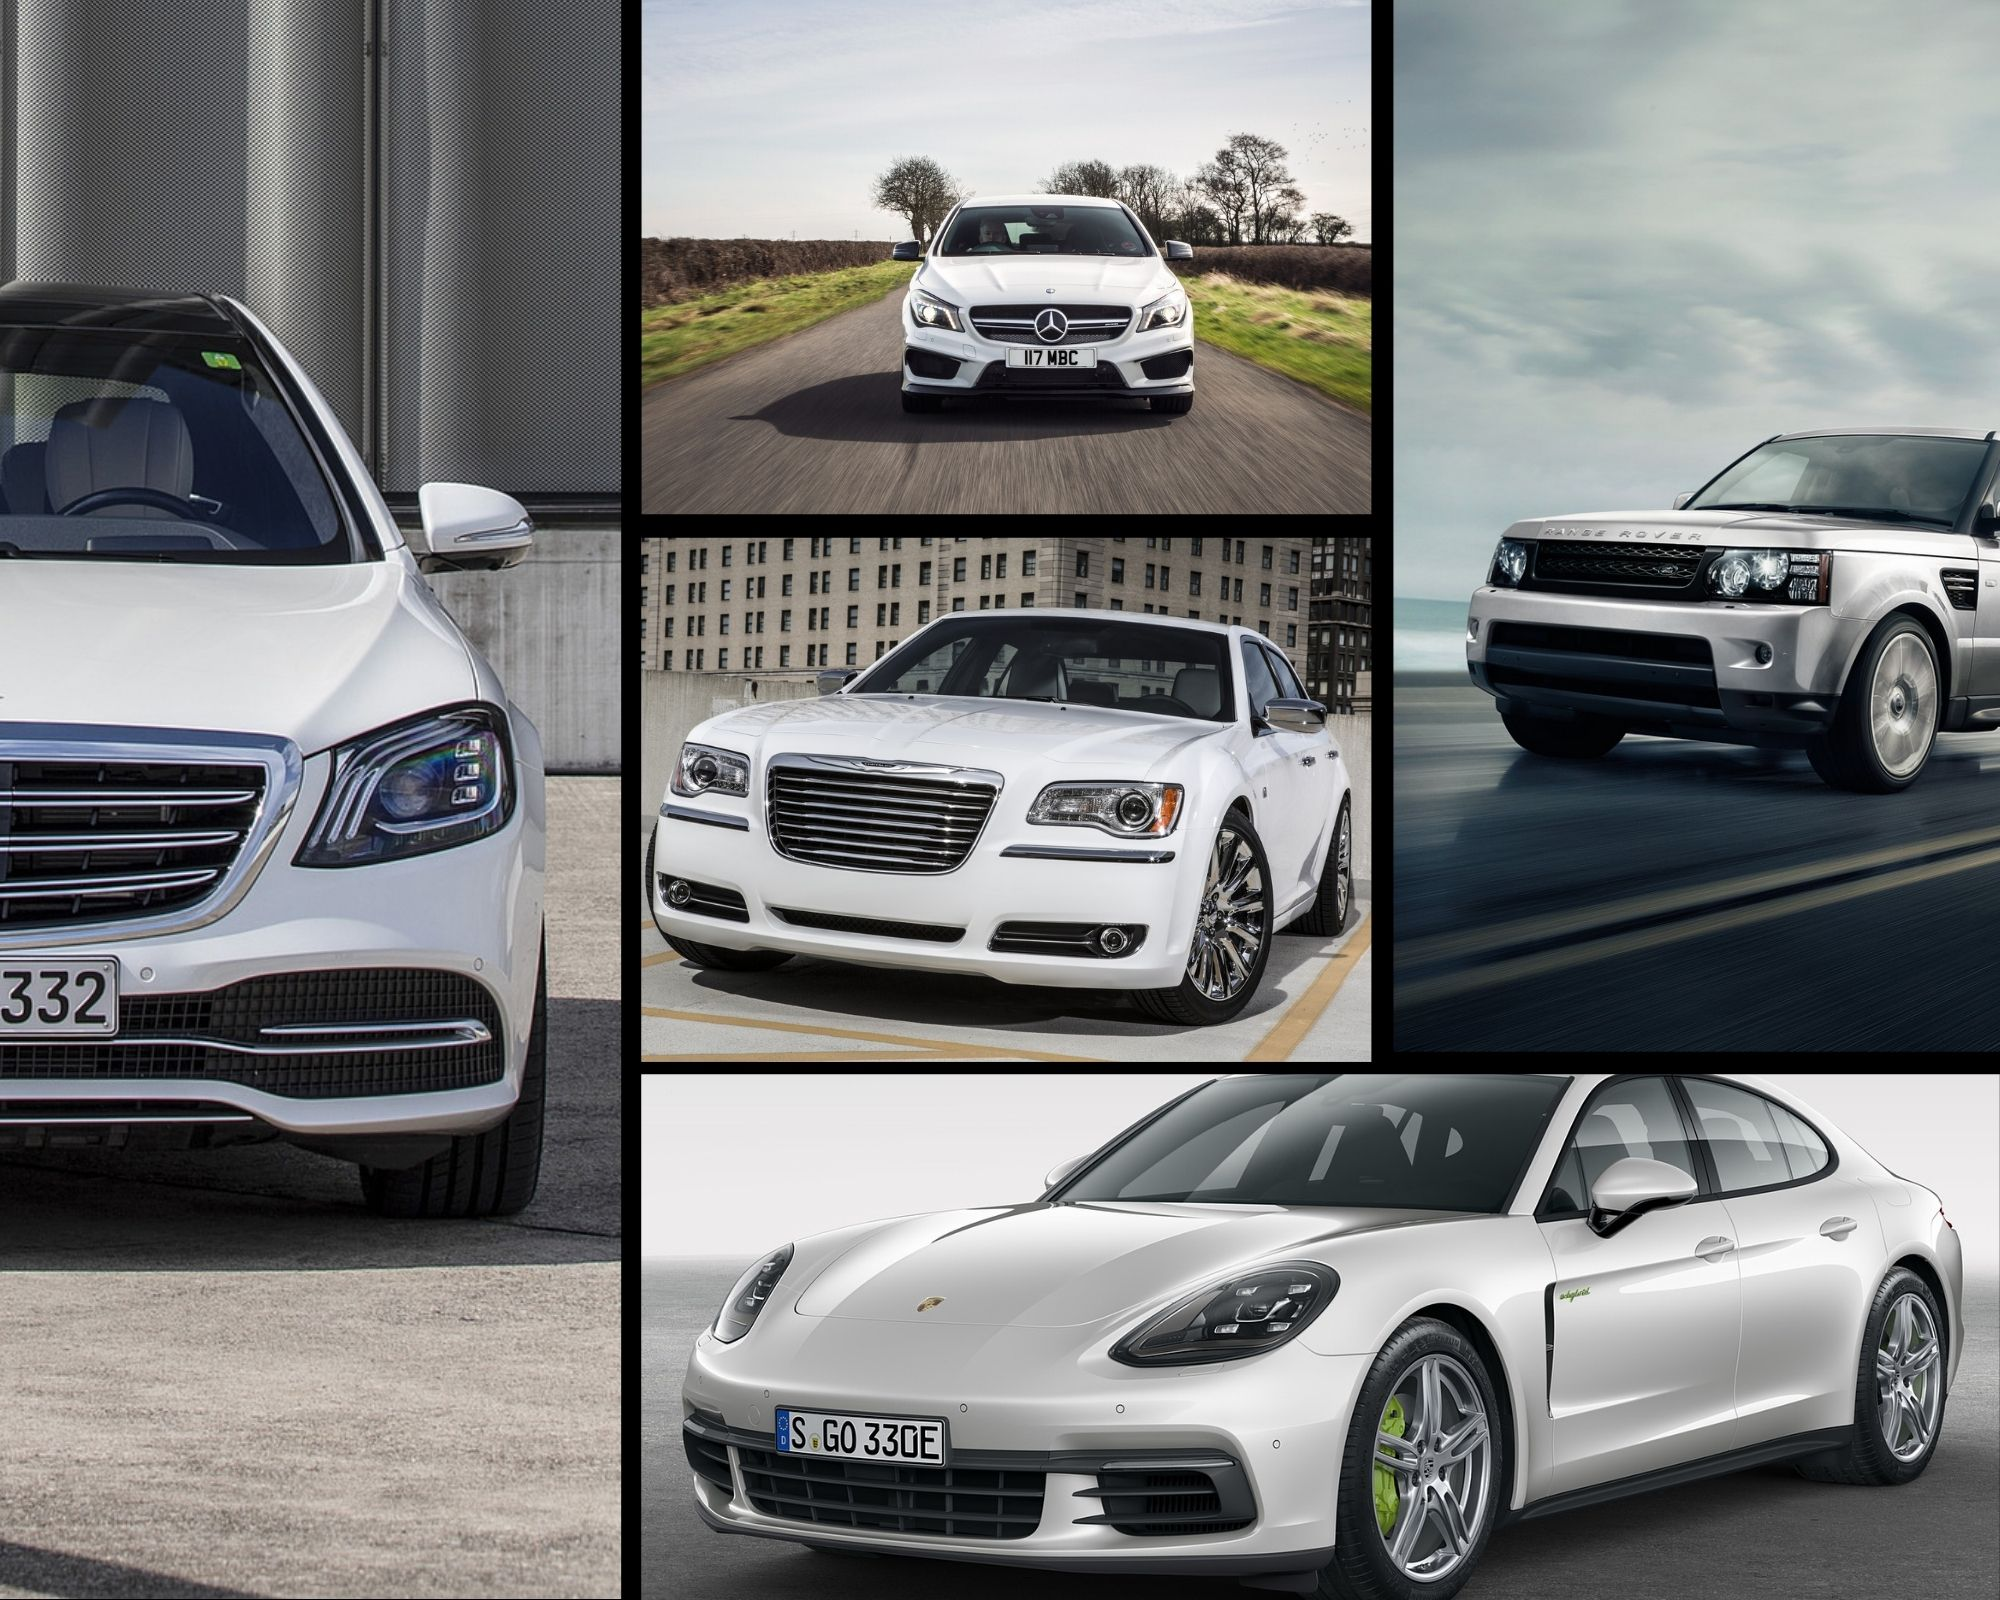 Hire Executive Cars in Newcastle